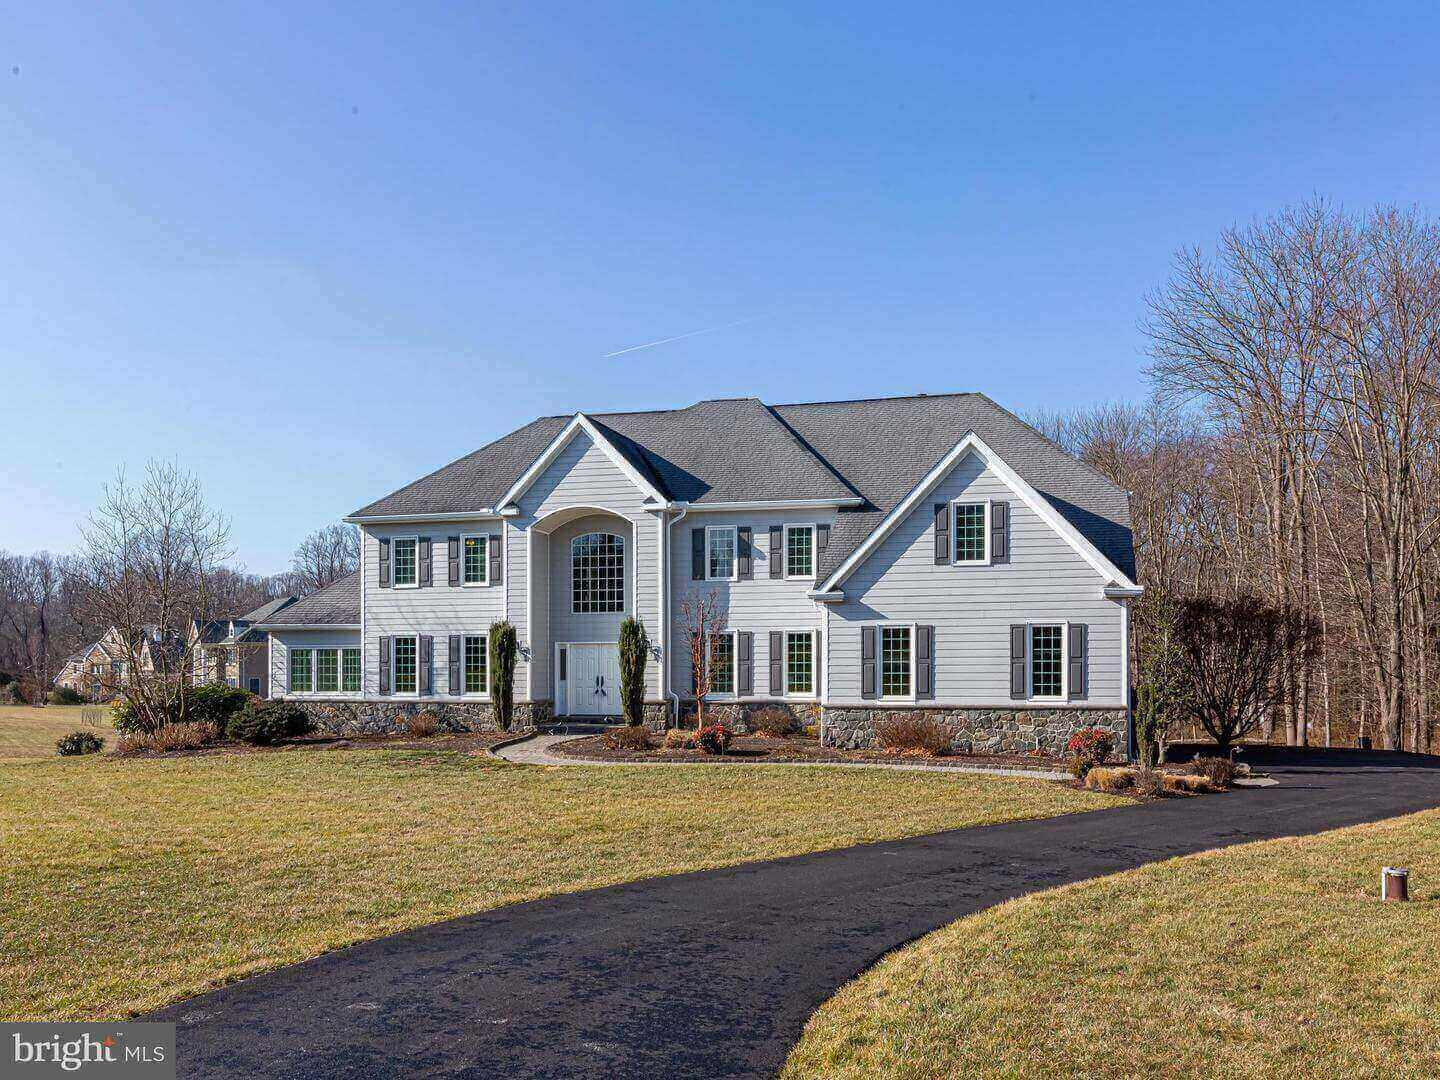 Malvern Bank House of the Week: Chadds Ford Traditional Has Natural Serenity, Comforts of Home